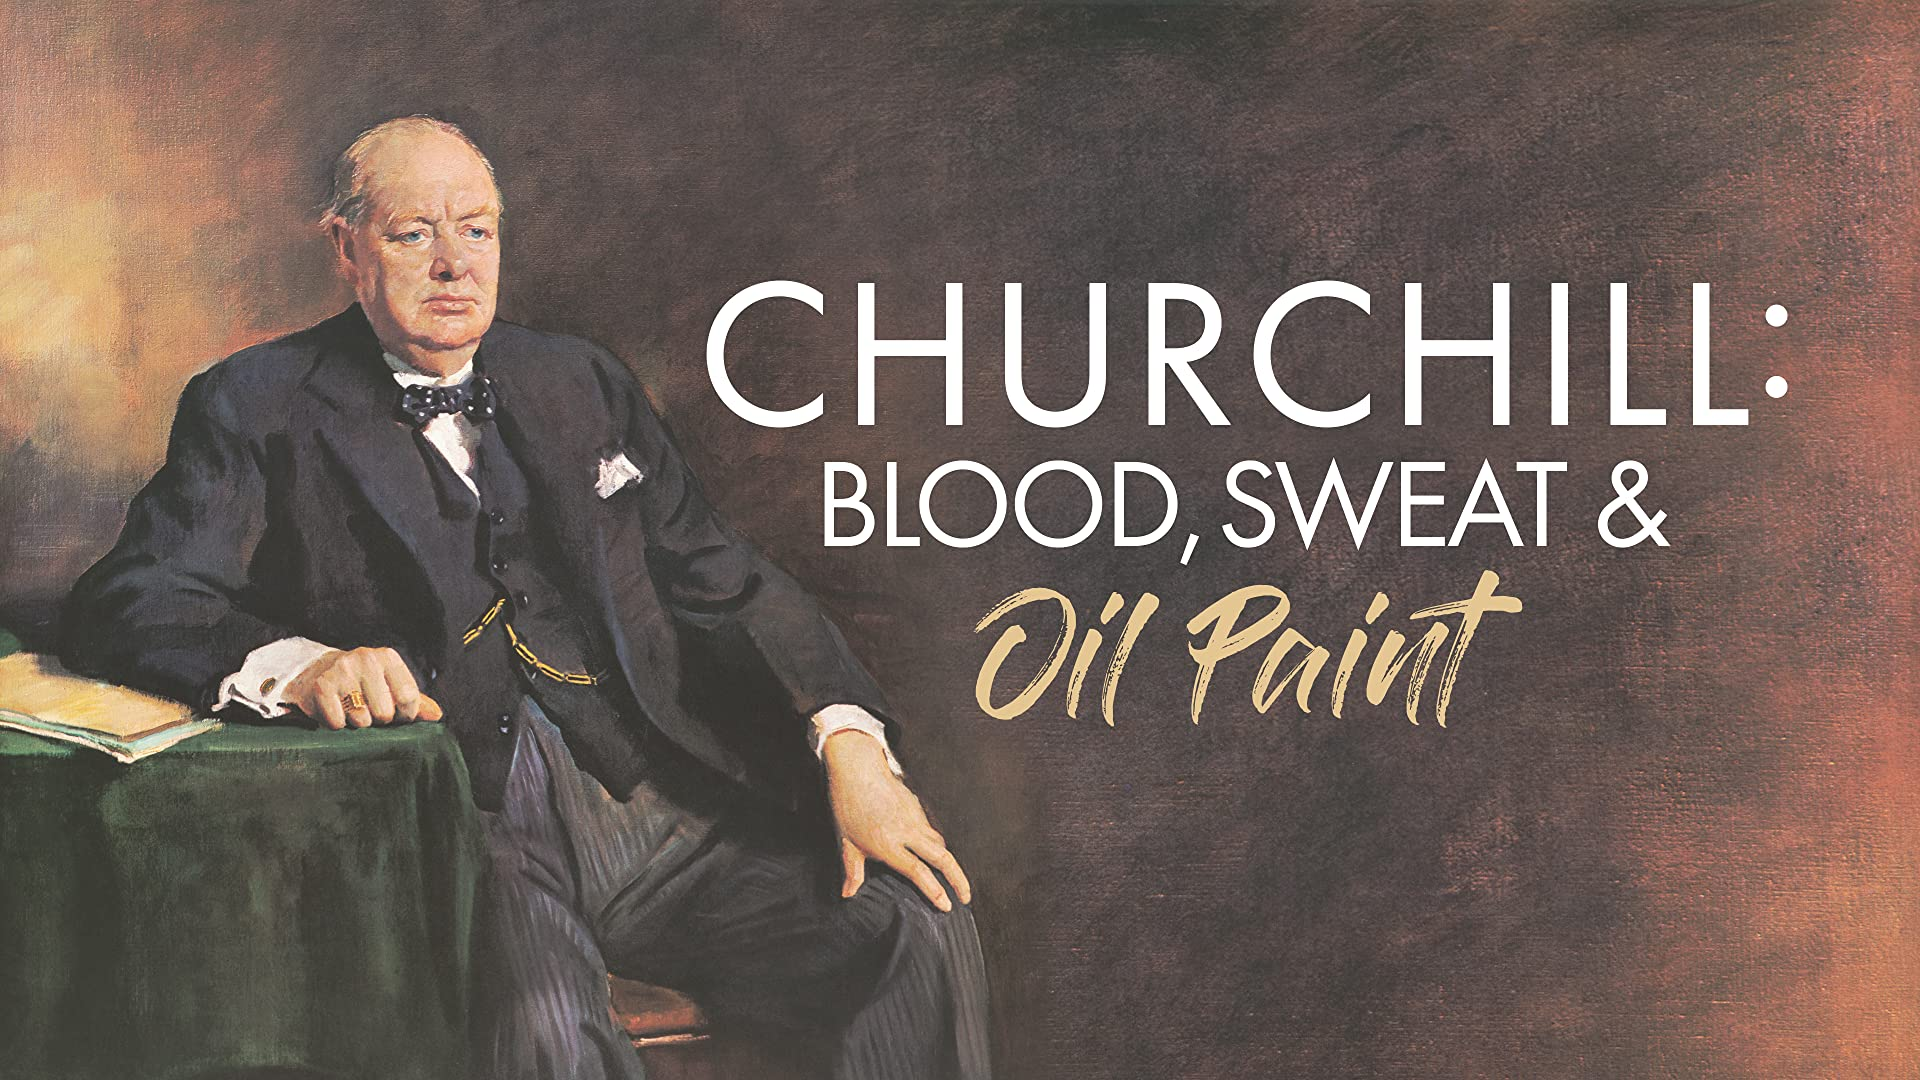 Andrew Marr on Churchill: Blood, Sweat & Oil Paint - Series 1